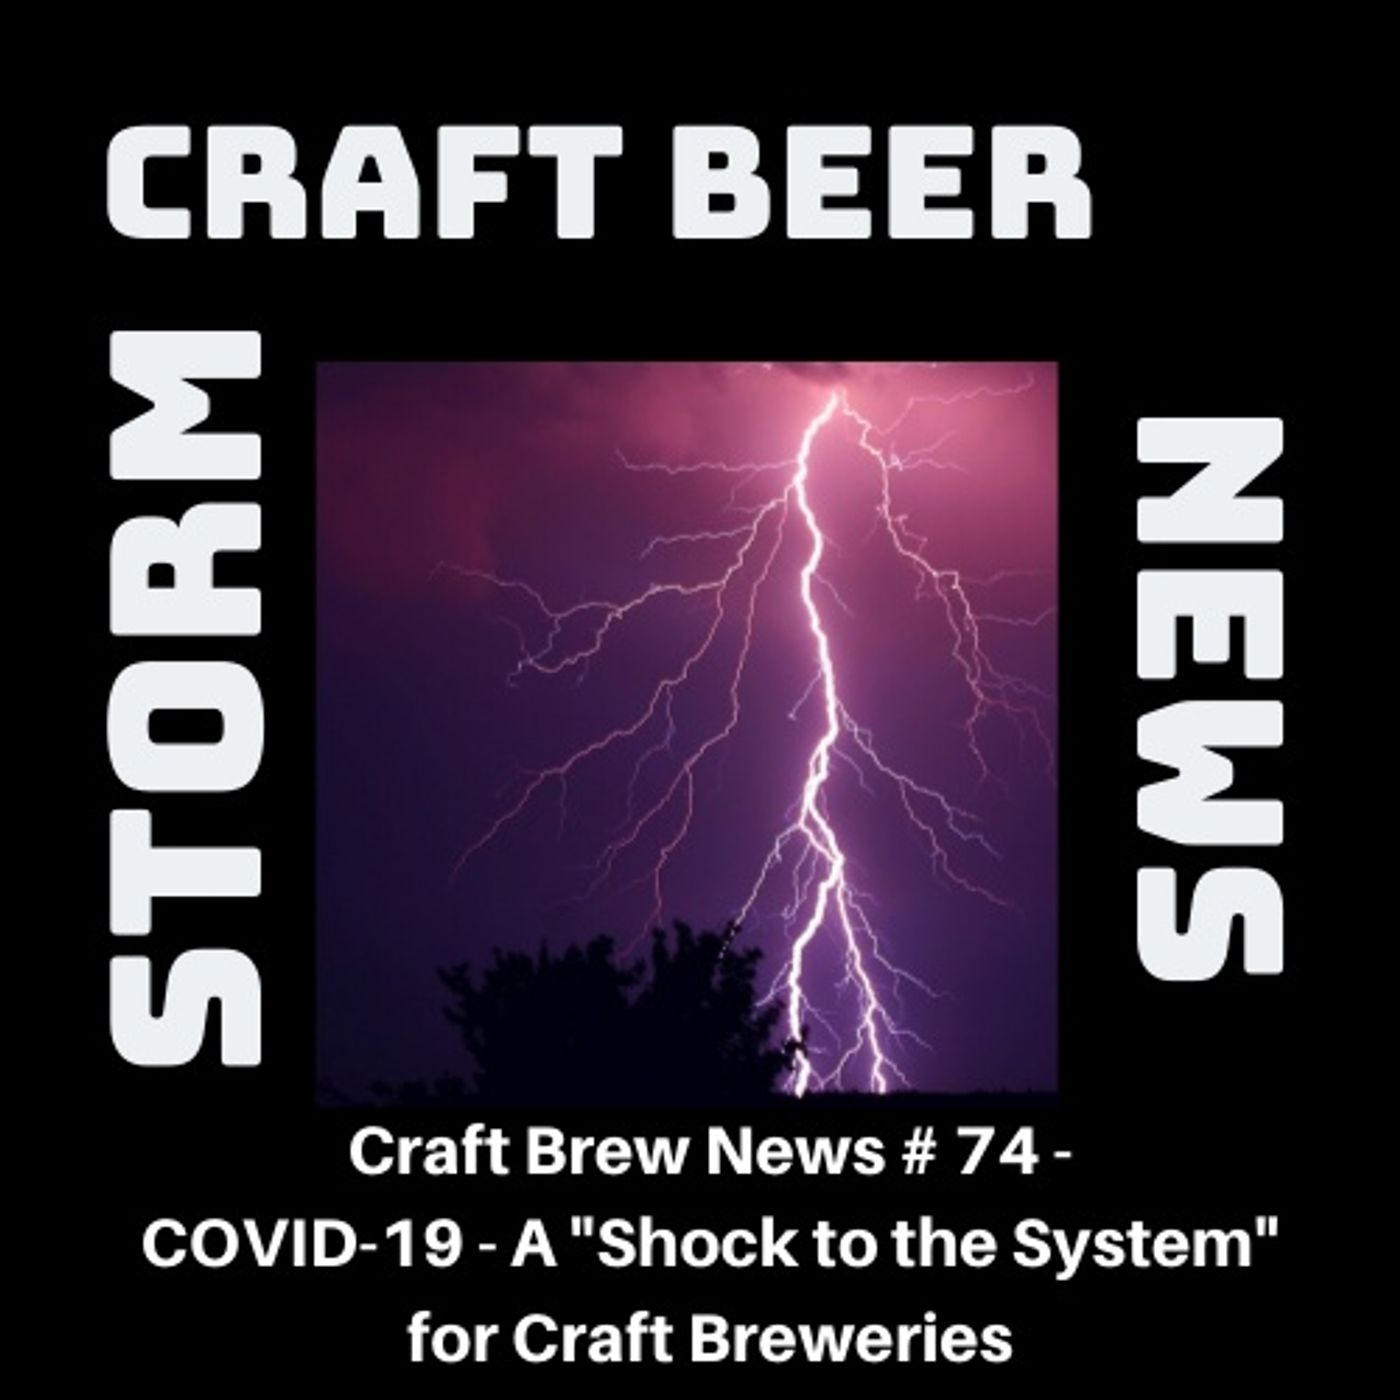 """Craft Brew News # 74 - COVID-19 - A """"Shock to the System"""" for Craft Breweries"""